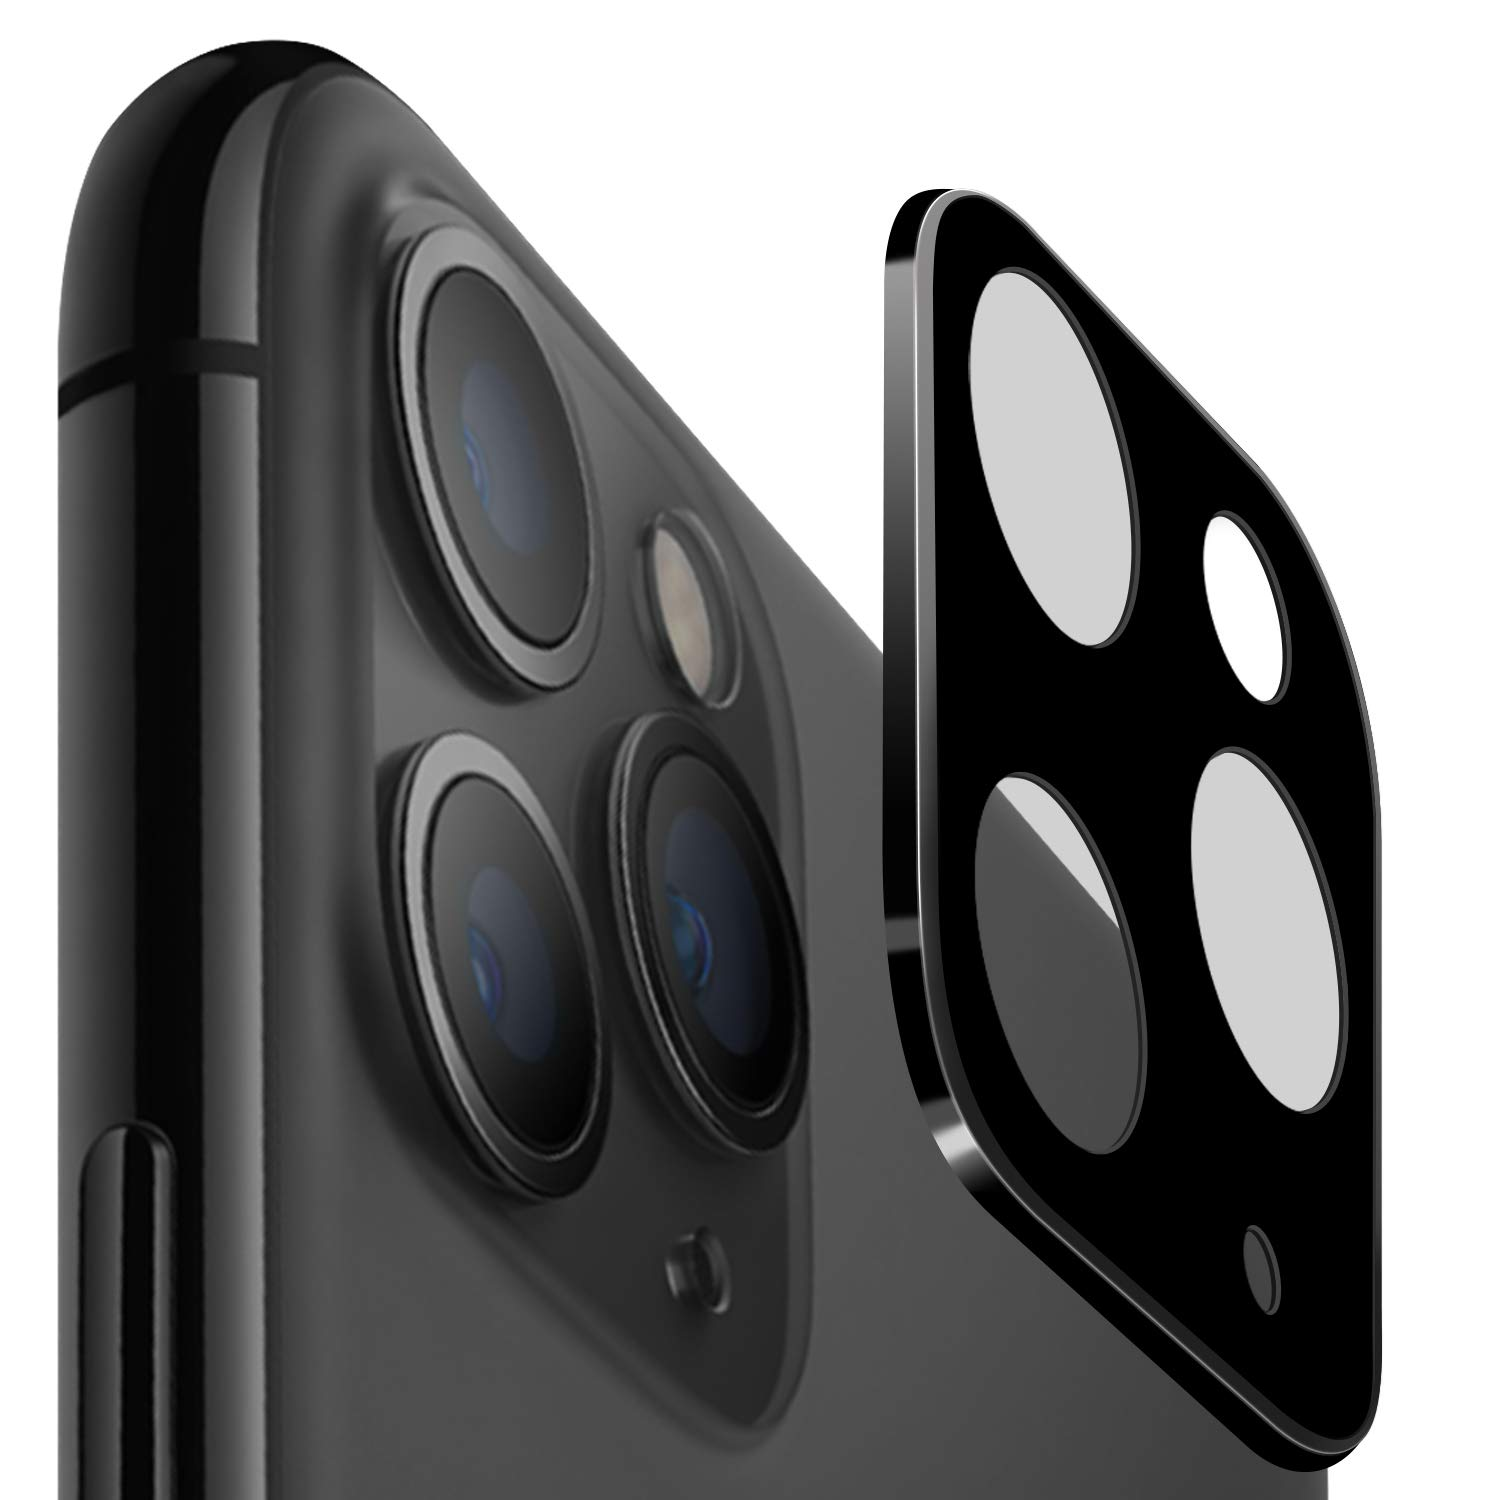 [2 Pack] Camera Screen Protector for iPhone 11 Pro / 11 Pro Max 5.8/6.5 Inch (2019), 0.3MM Thin Organic Tempered Glass Camera Lens Protector for iPhone 11 Pro Max (Black)